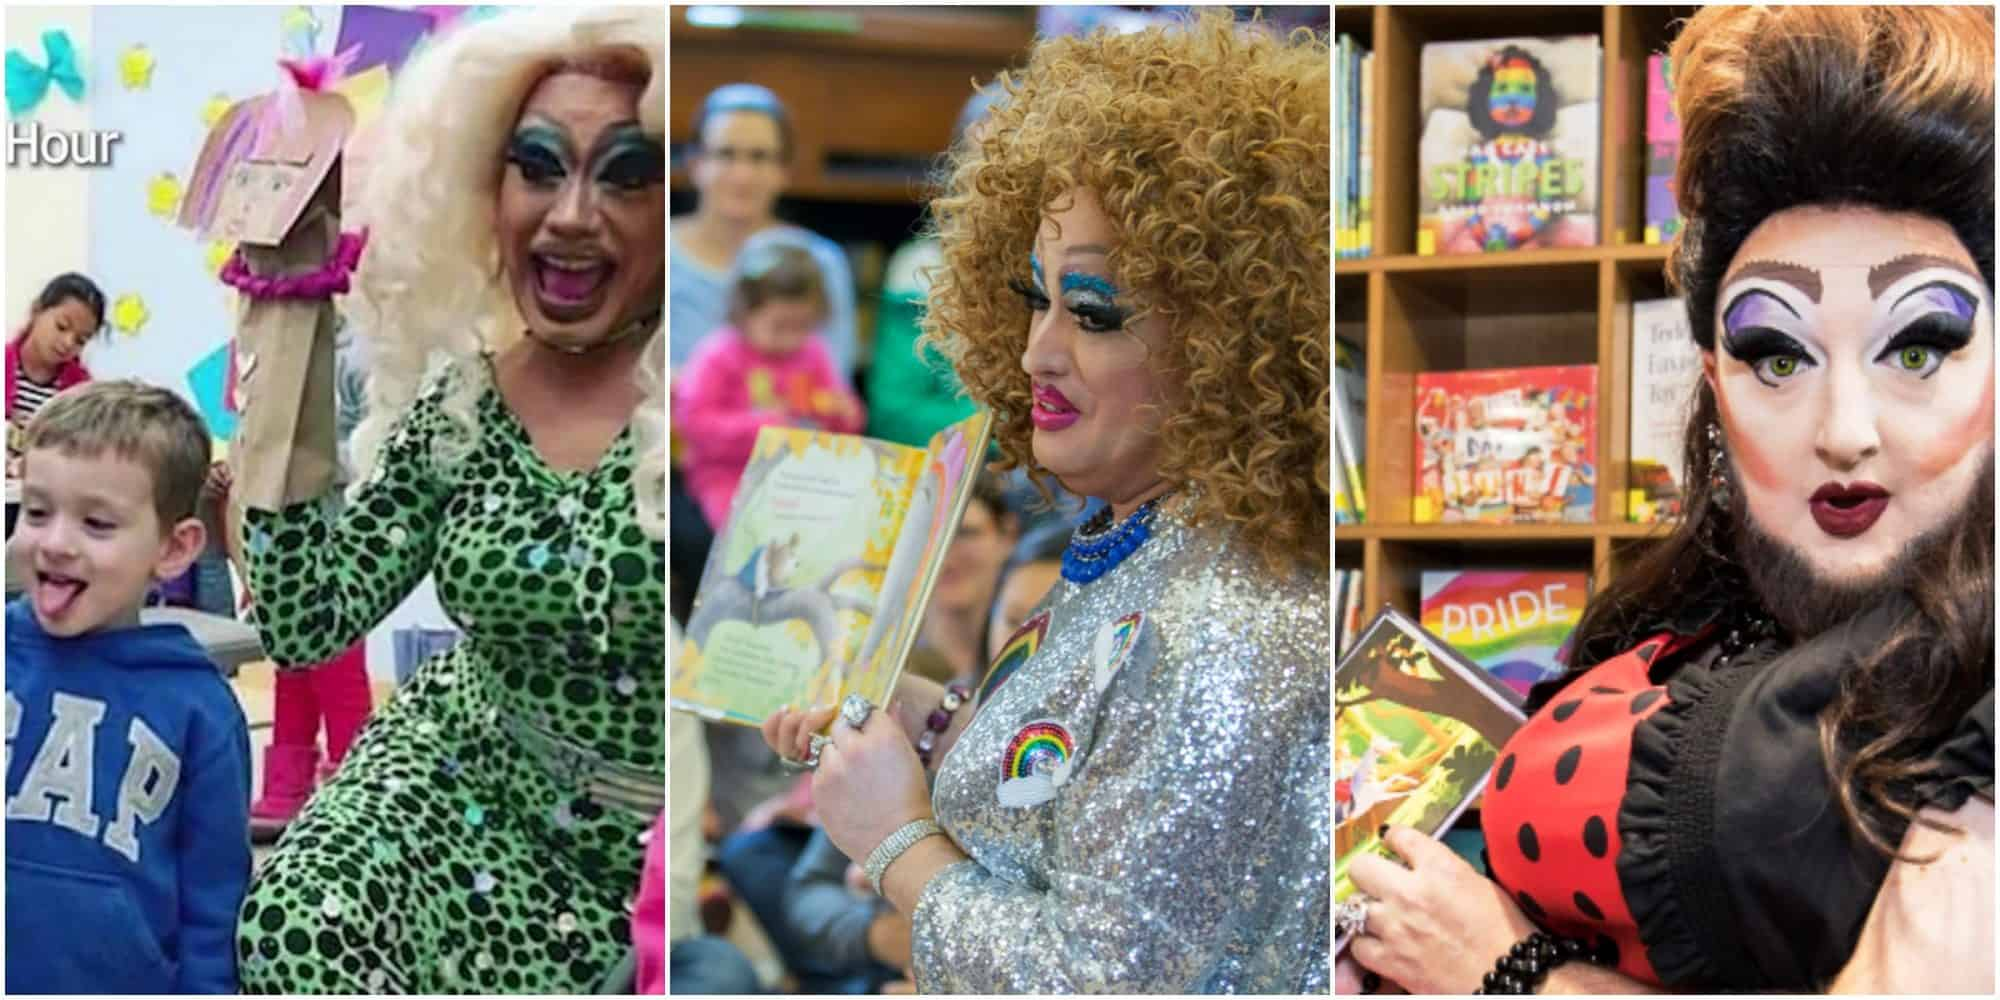 Books Unhealthy For Children {Recent Newbery, Caldecott & YA}, Drag Queen shows